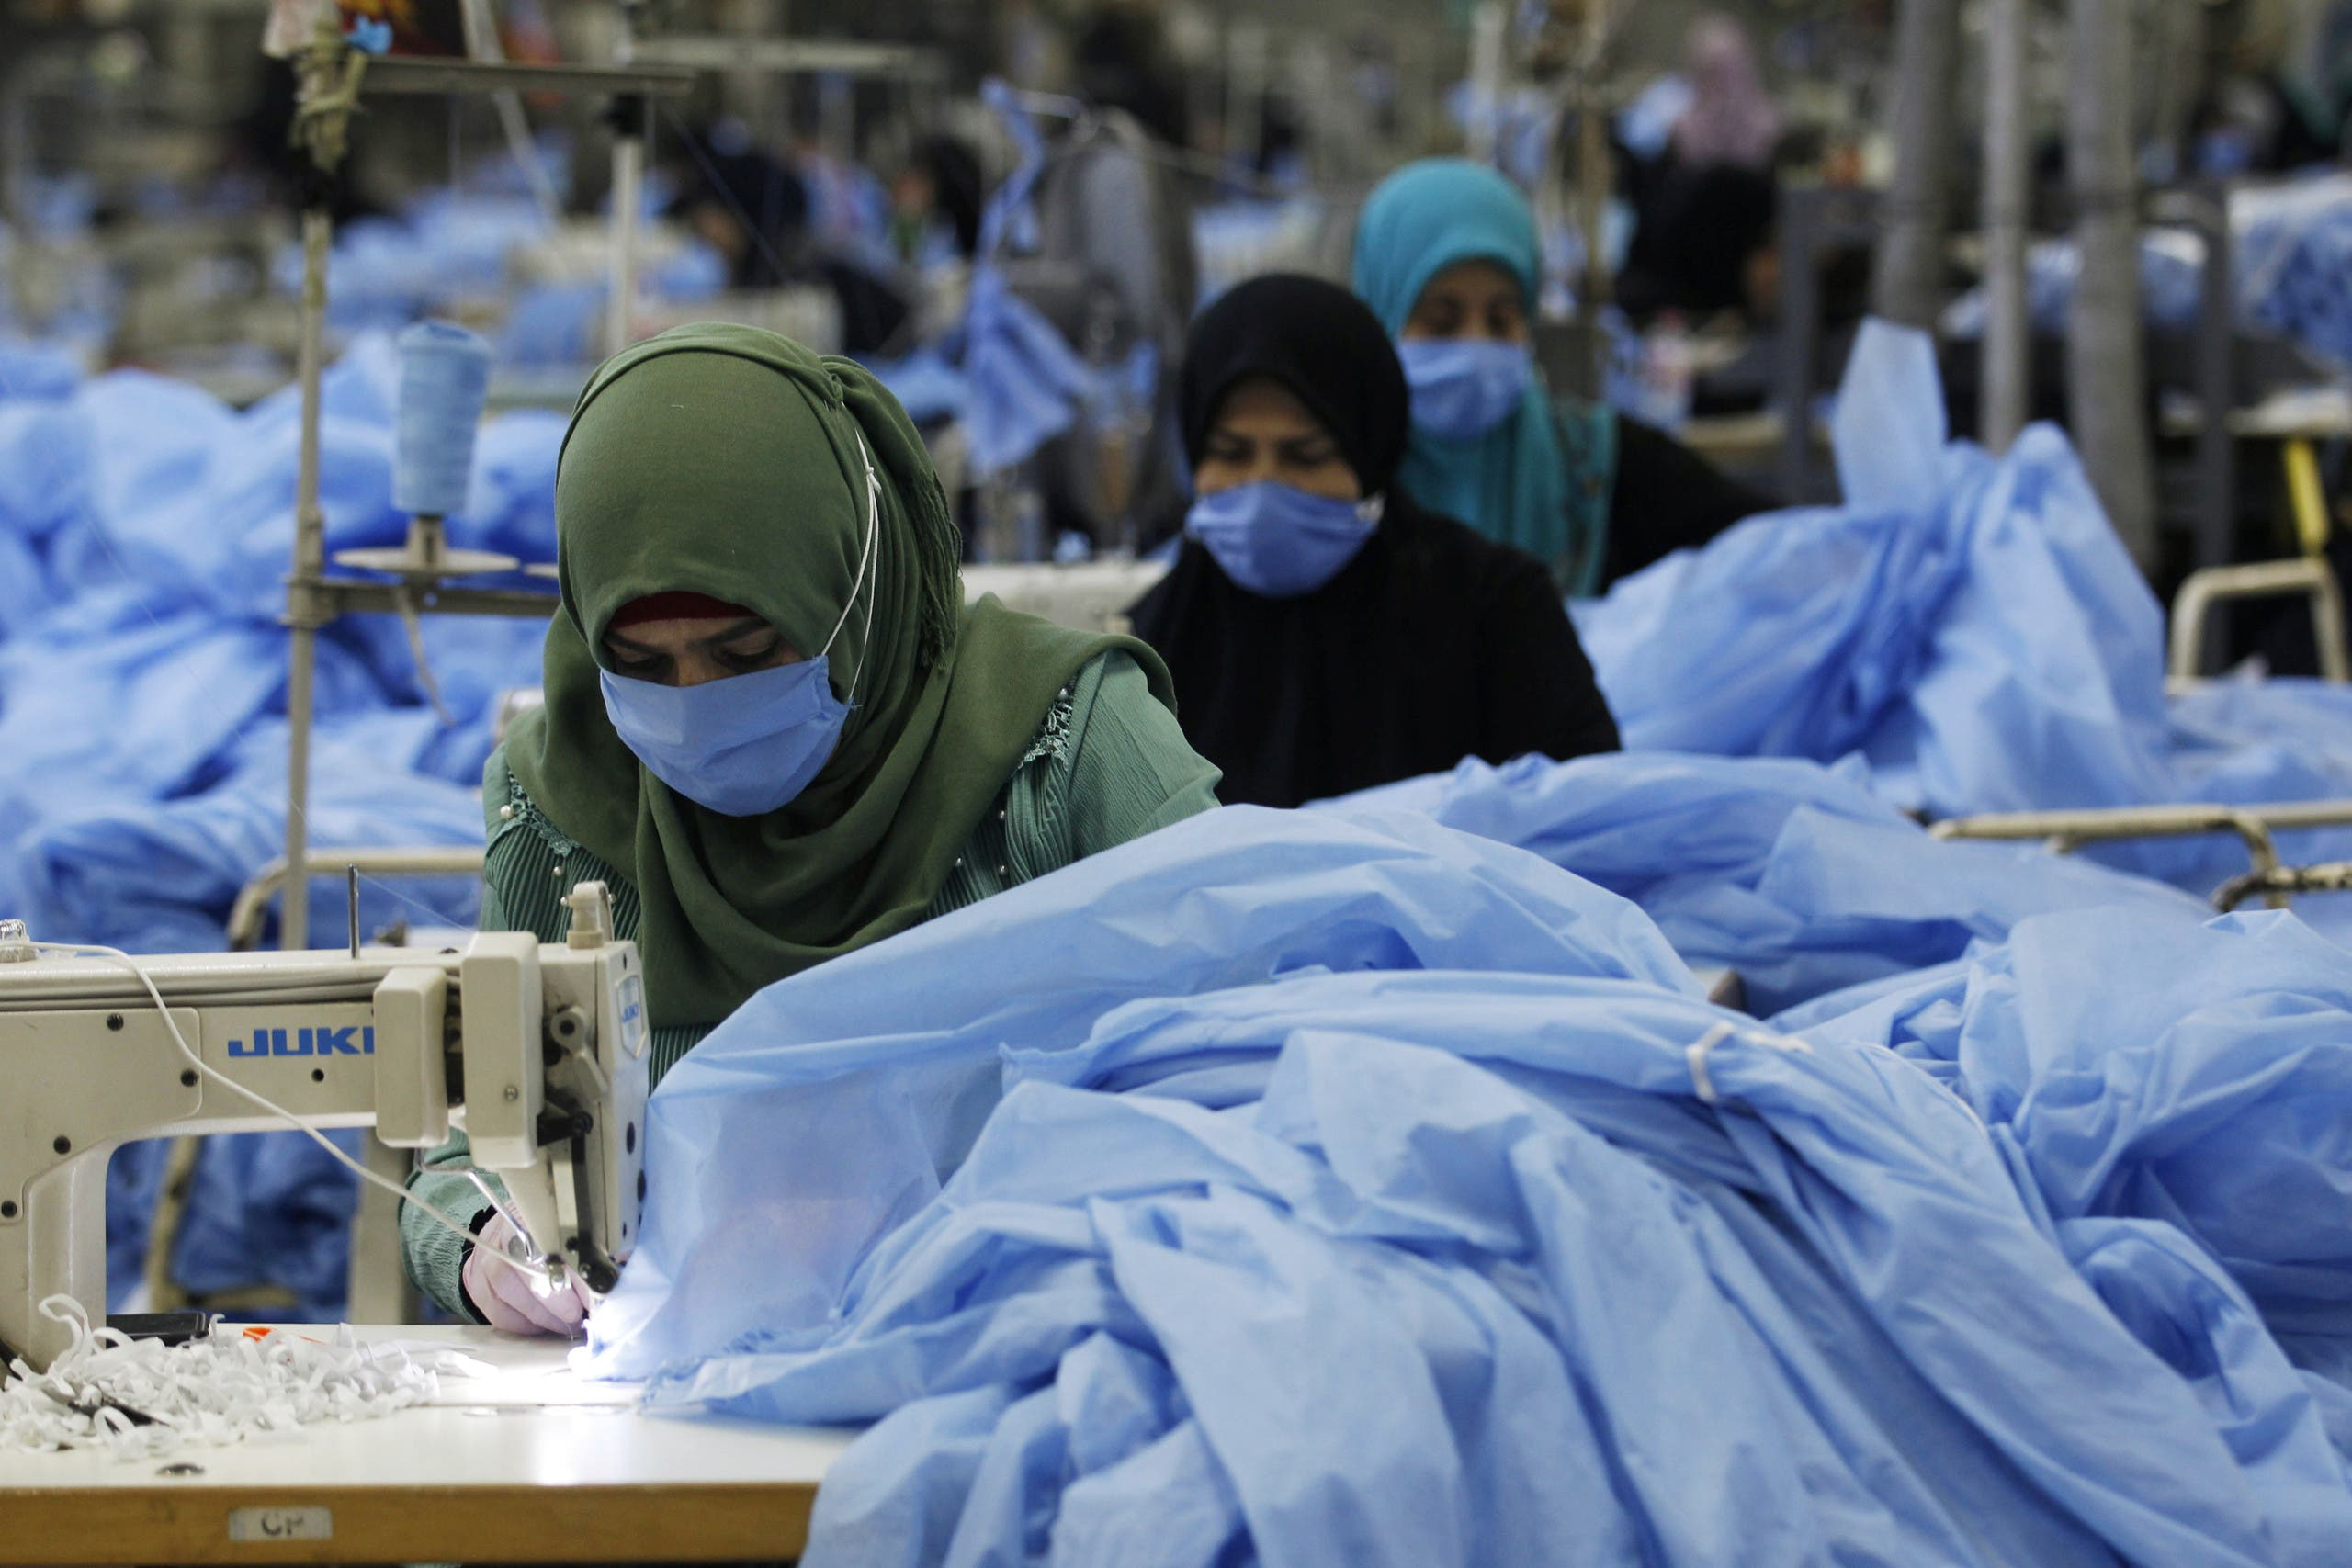 Women sew protective suits, following the outbreak of the coronavirus disease (COVID-19), at a factory in the holy city of Najaf, Iraq June 10, 2020. (Reuters)